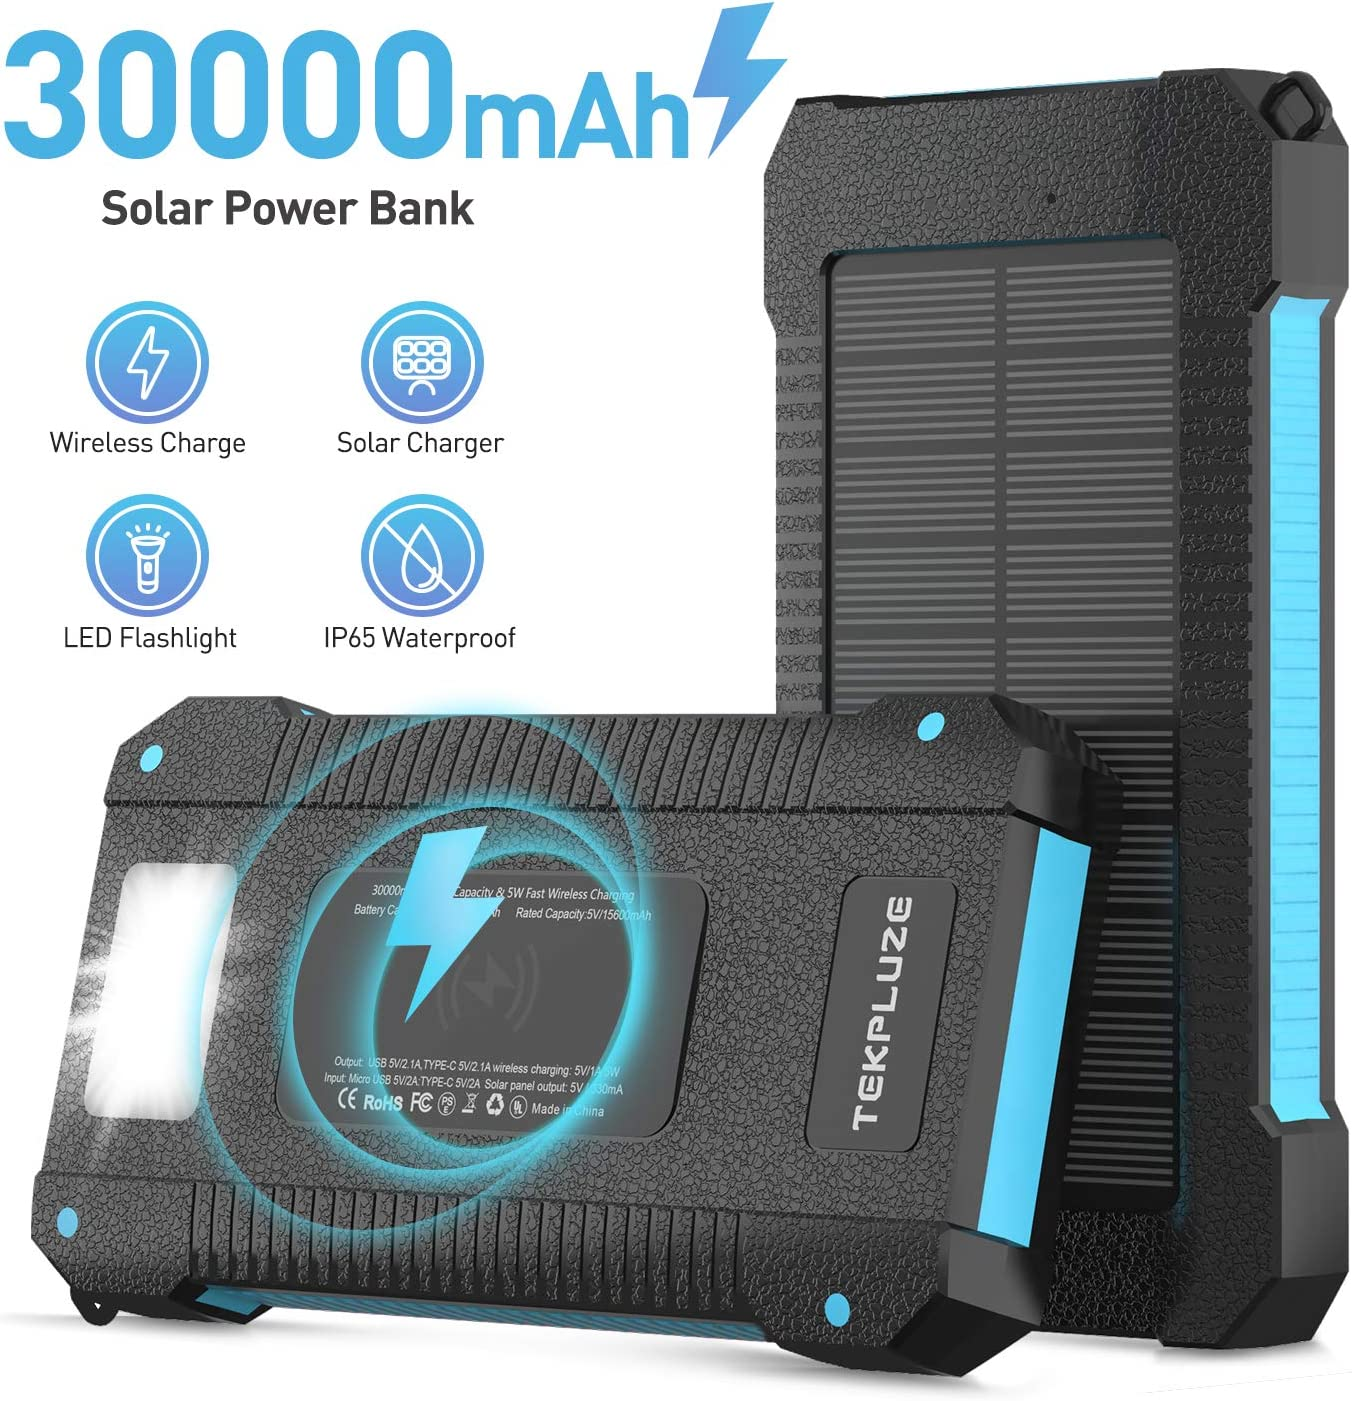 Solar Power Bank 30000 mAh,Wireless Portable Charger Solar Panel External Battery Type-C 5V Dual USB with LED Flashlight Black Waterproof,Dustproof,Shockproof Compatible iOS /& Android Camping.